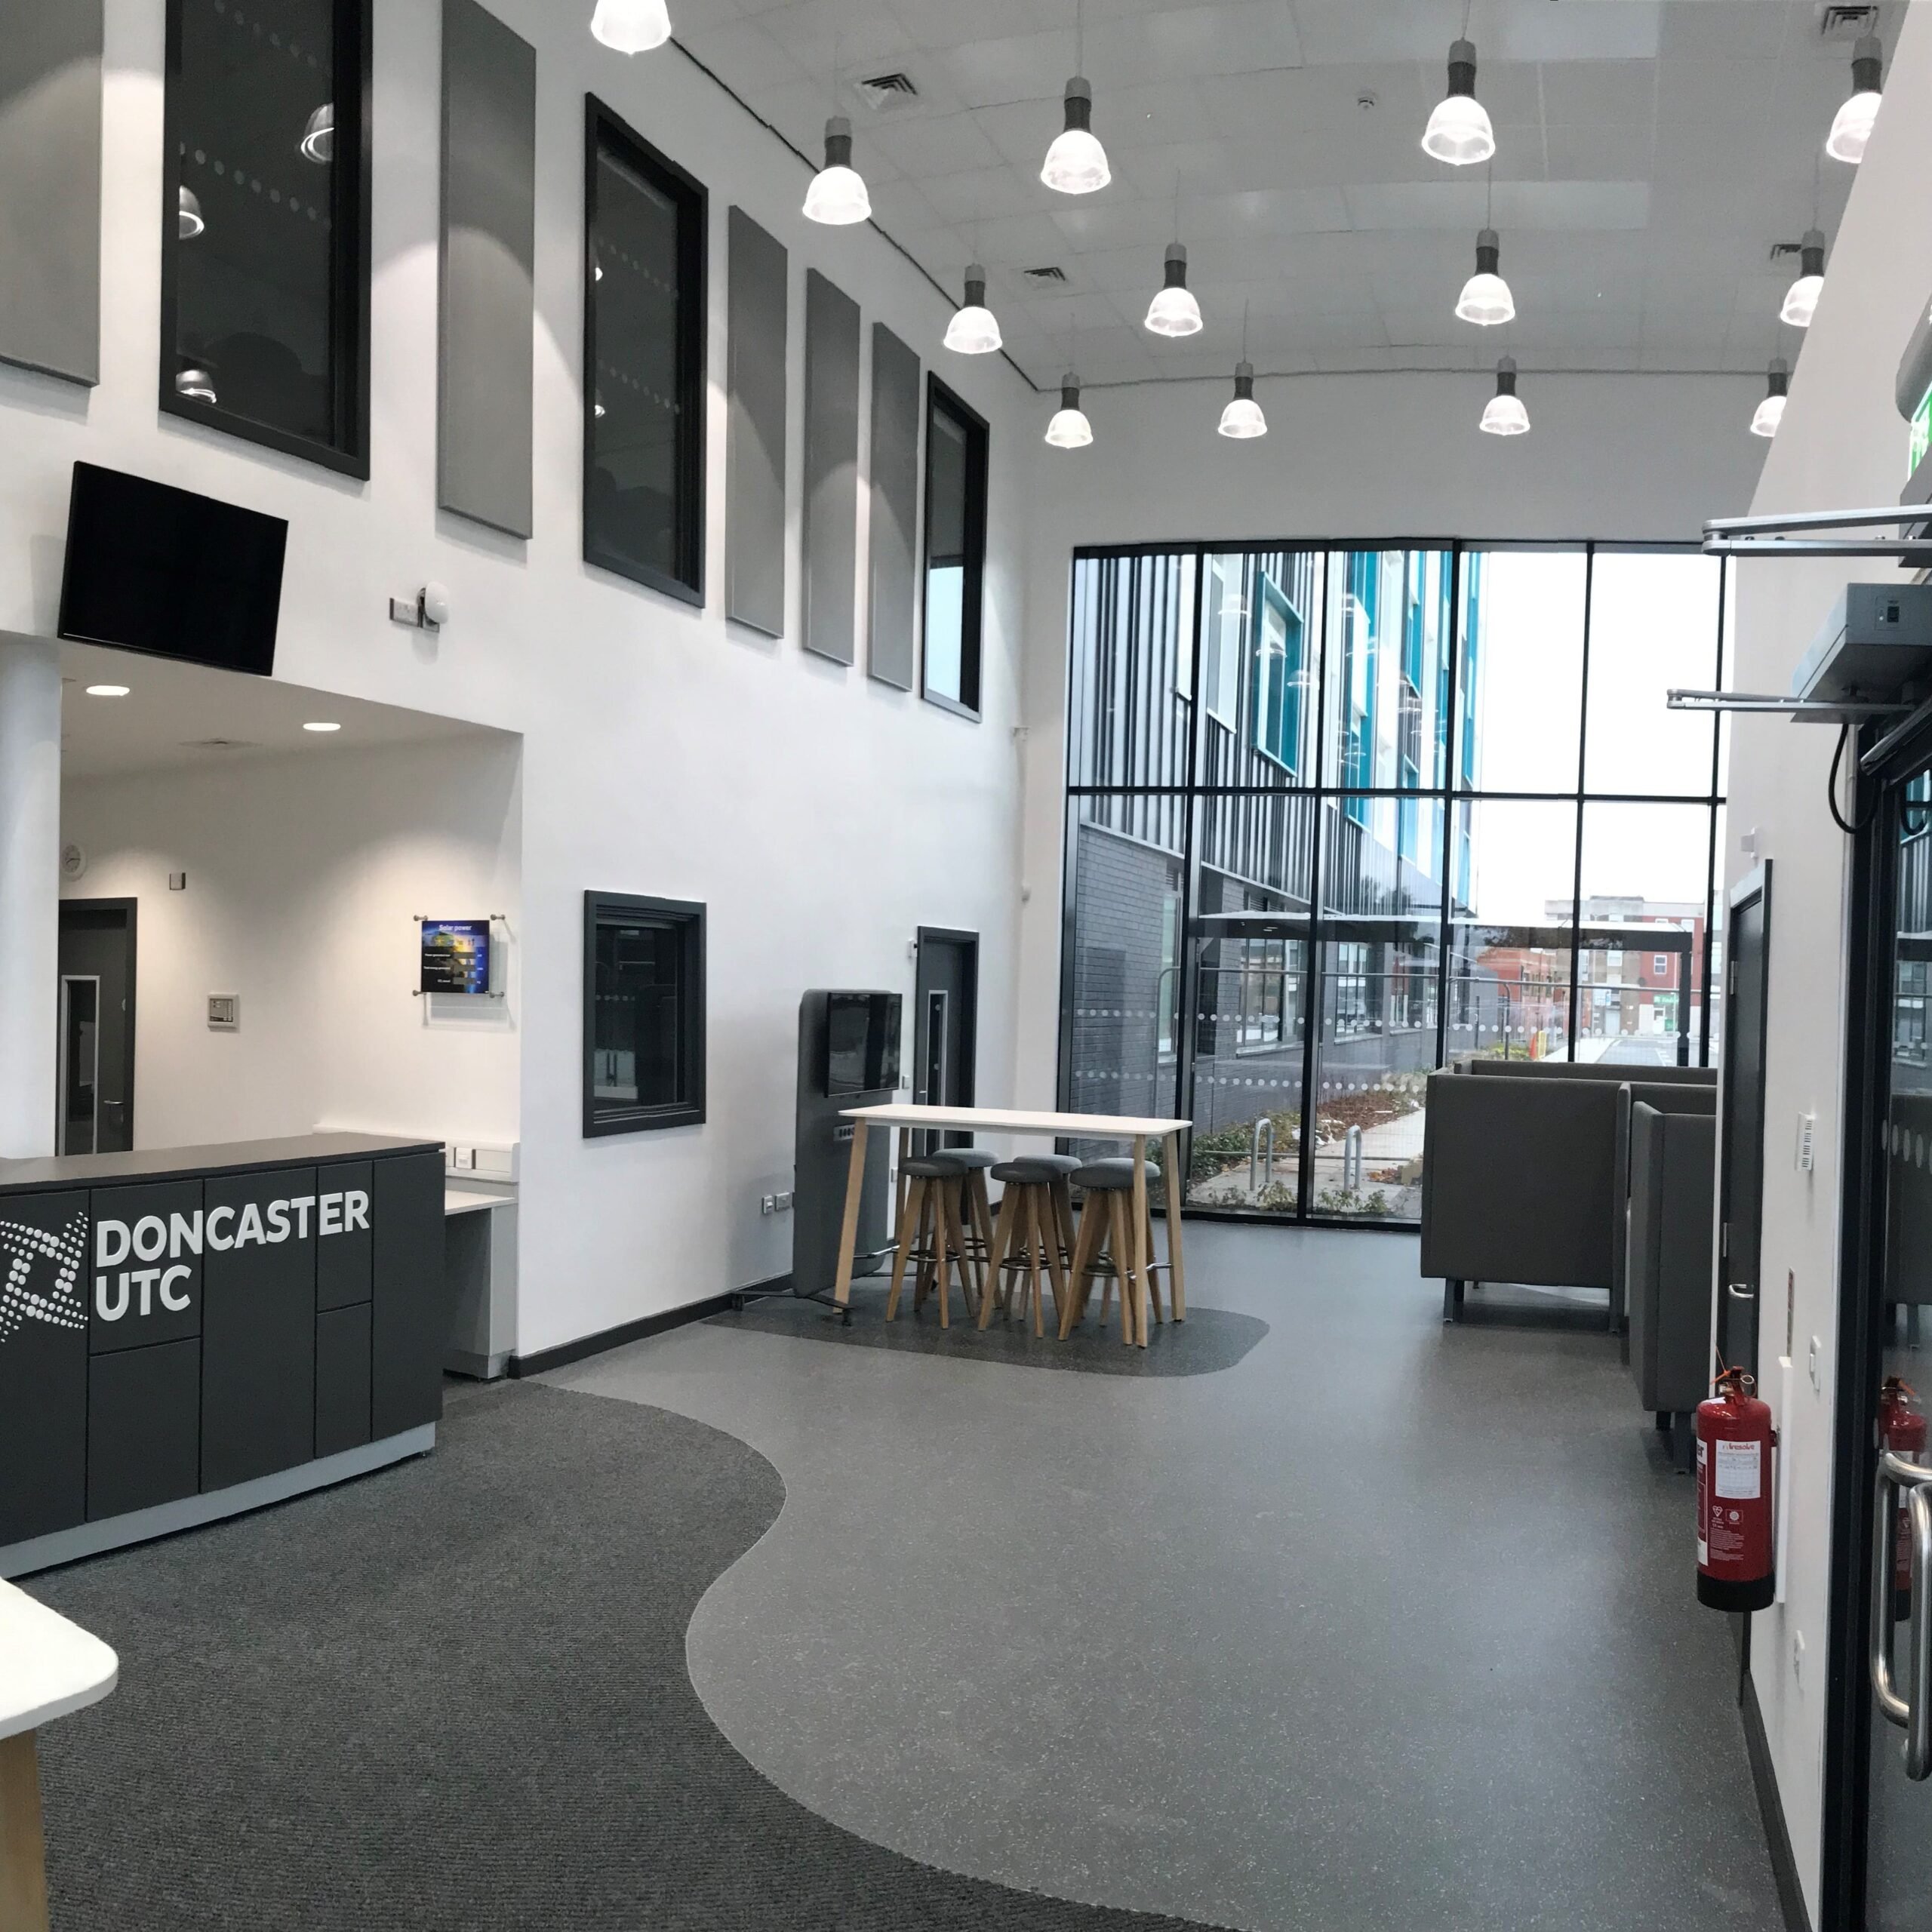 Rockfon Suspended Ceiling Installation For Doncaster UTC